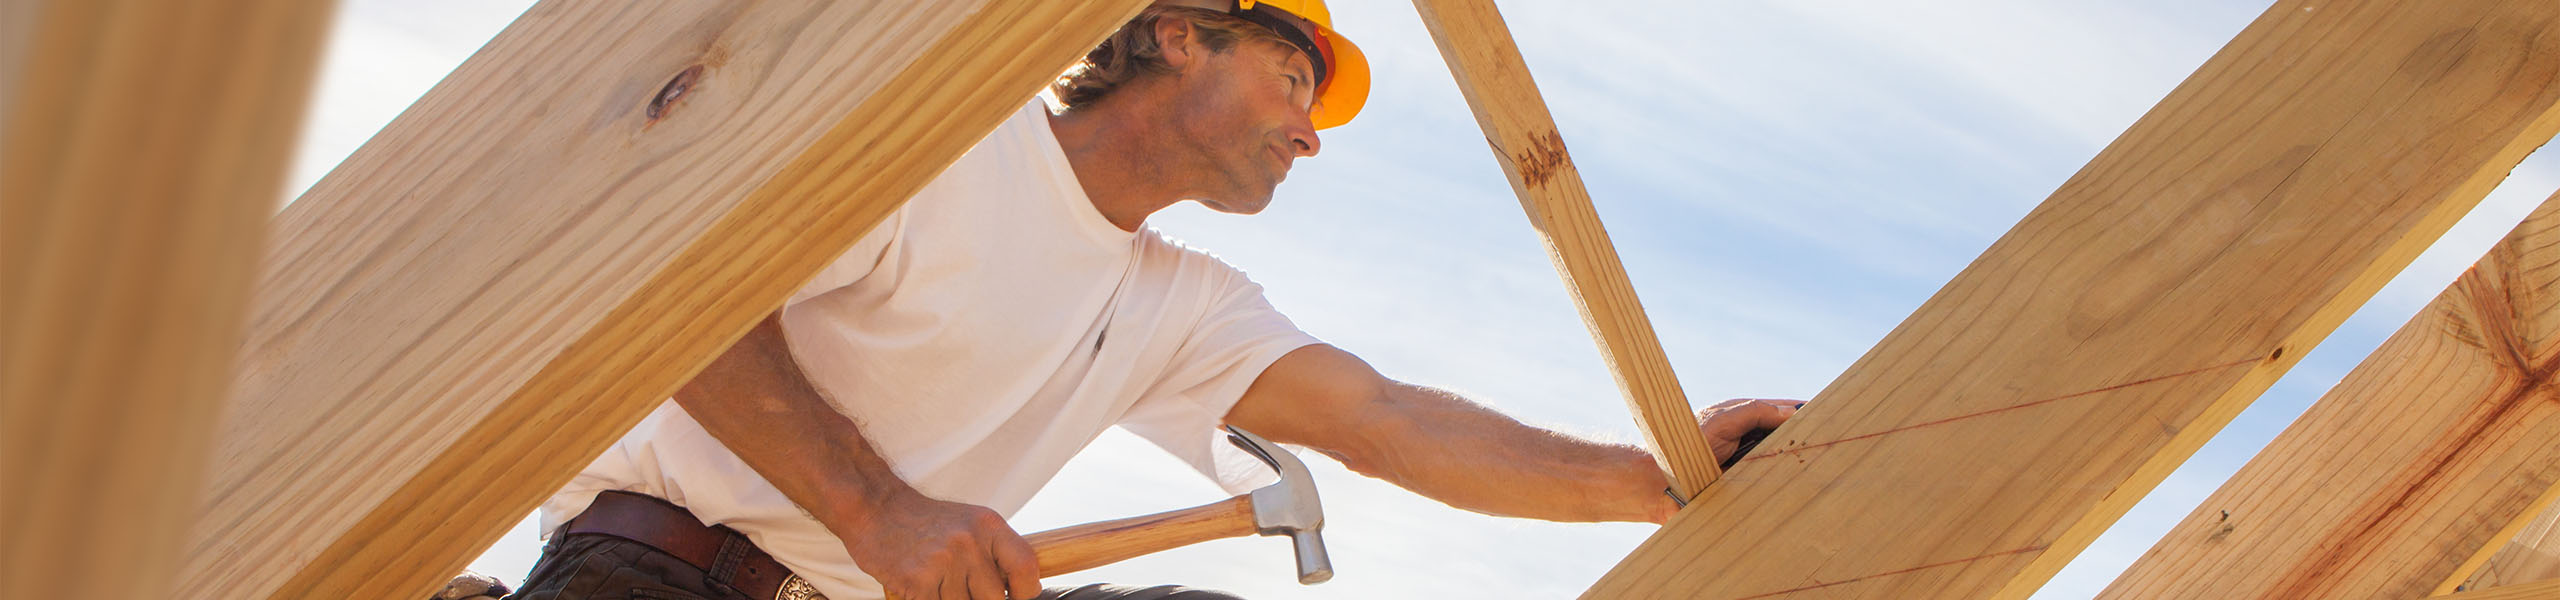 http://Man%20working%20on%20construction%20site